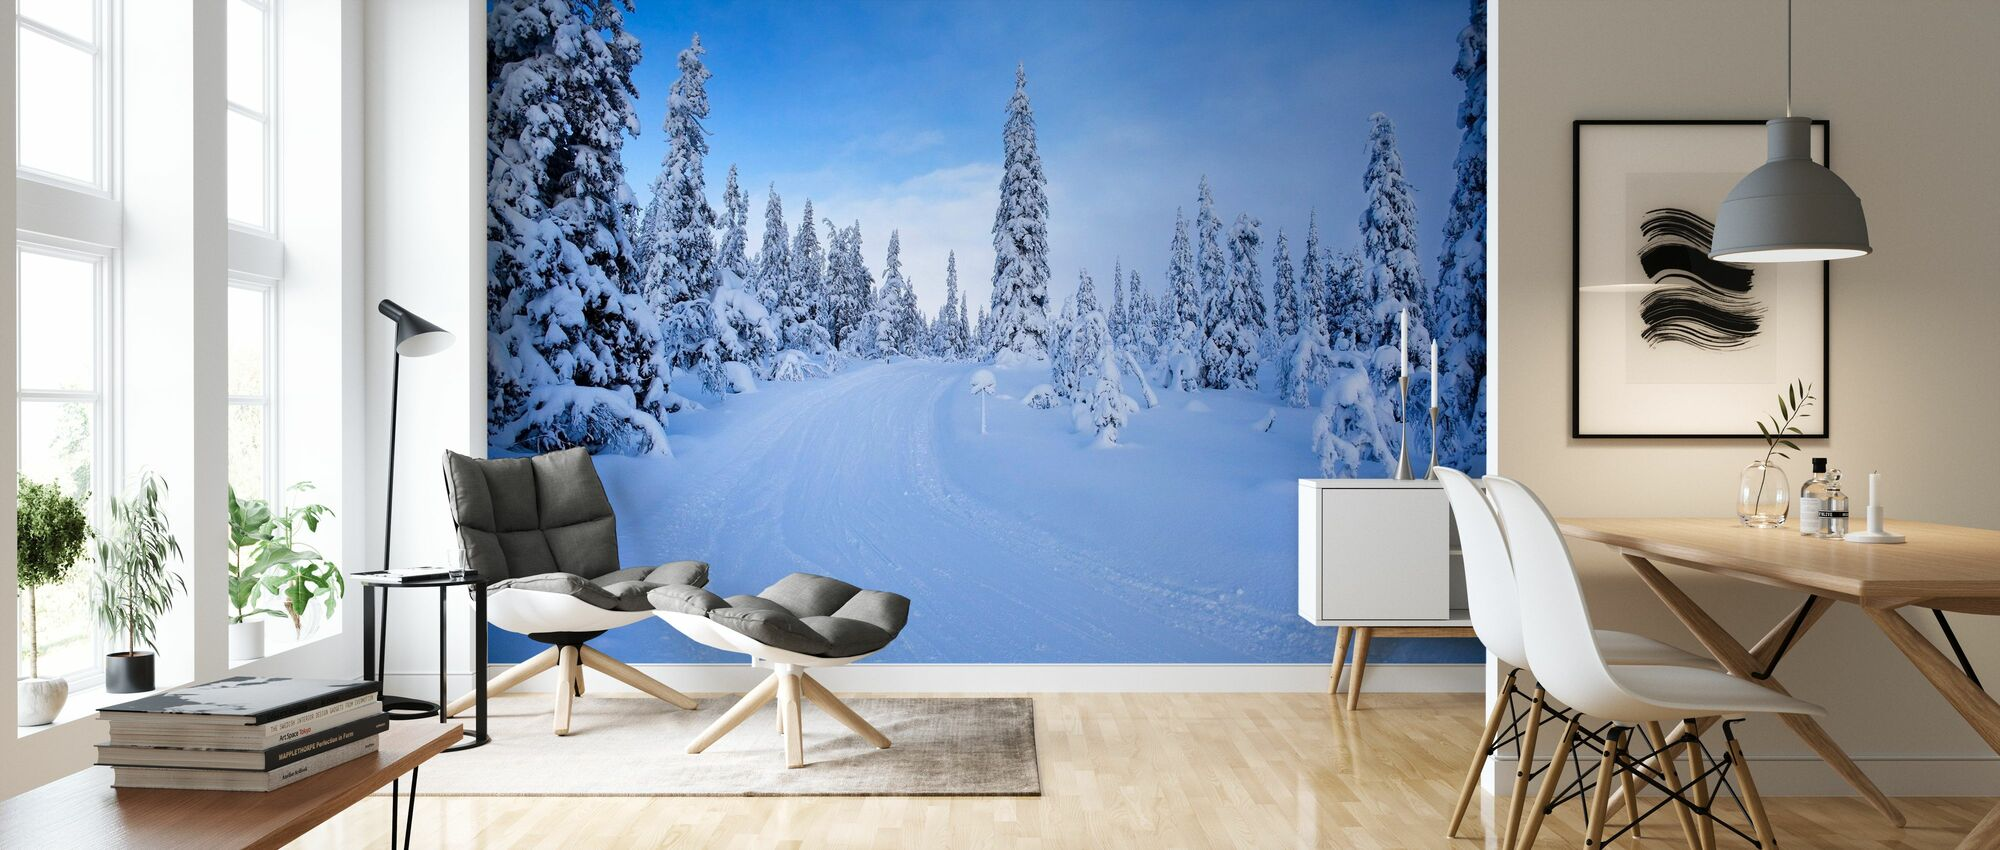 Ski track in Dalarna, Sweden - Wallpaper - Living Room